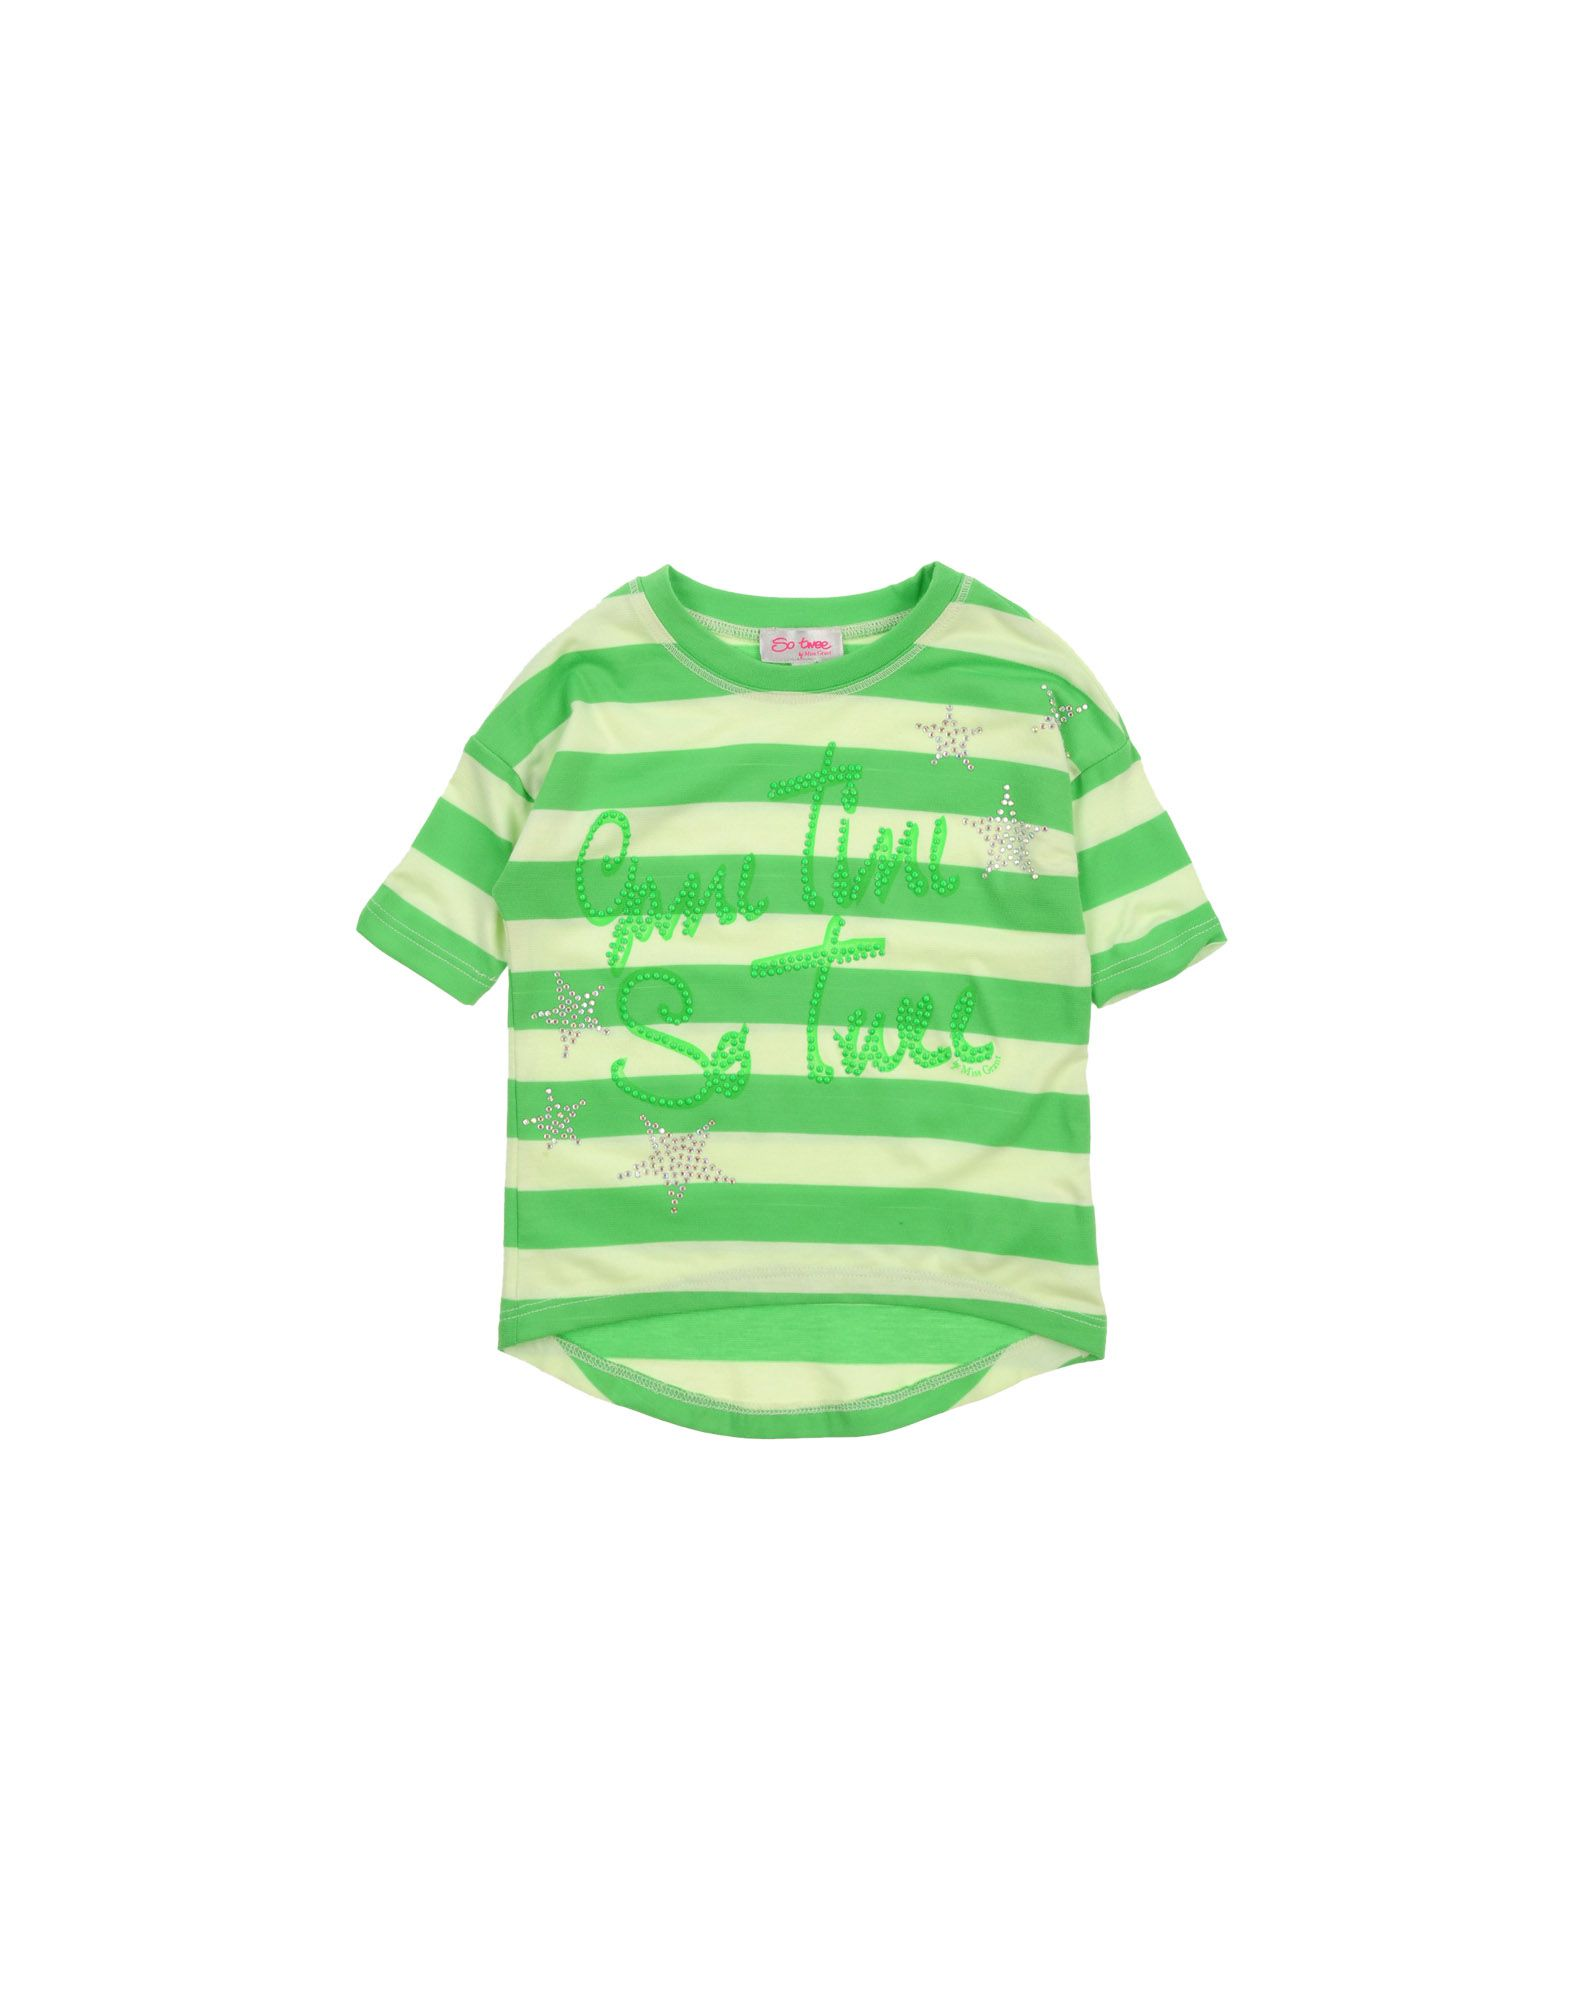 So Twee By Miss Grant Kids' T-shirts In Green